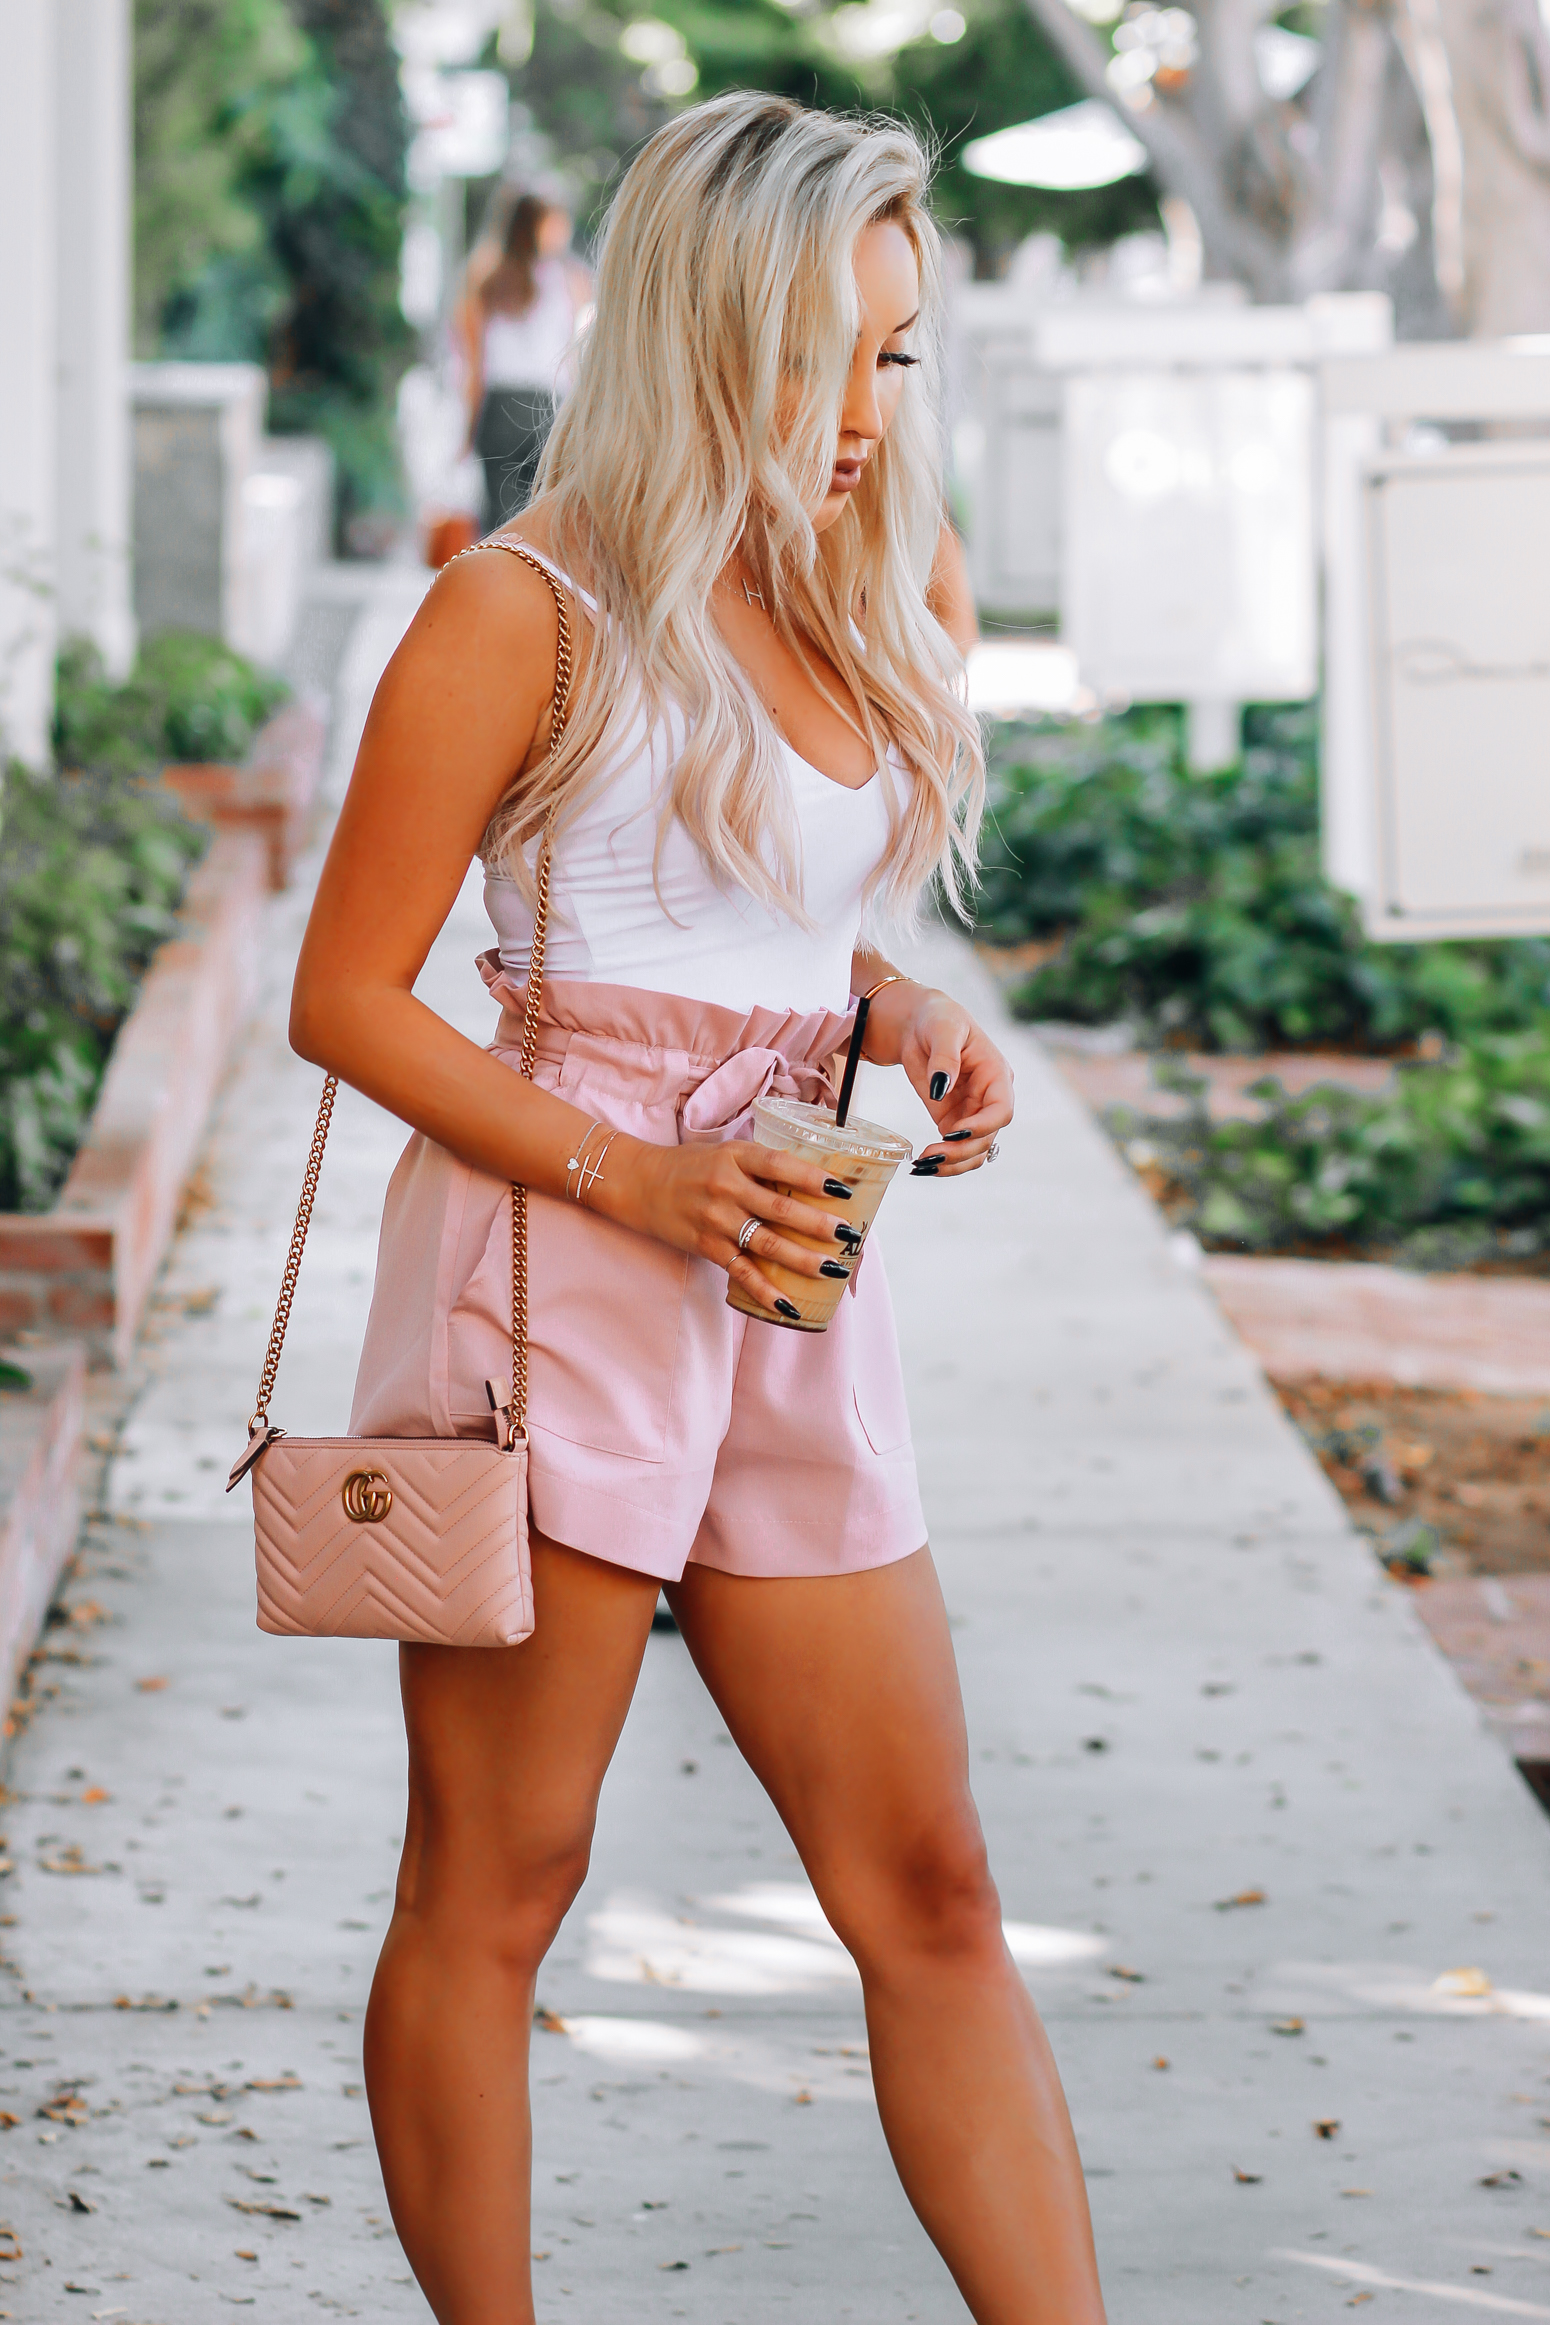 Blondie in the City   Pink & White Outfit   High waisted Pink Shorts   Pink Gucci